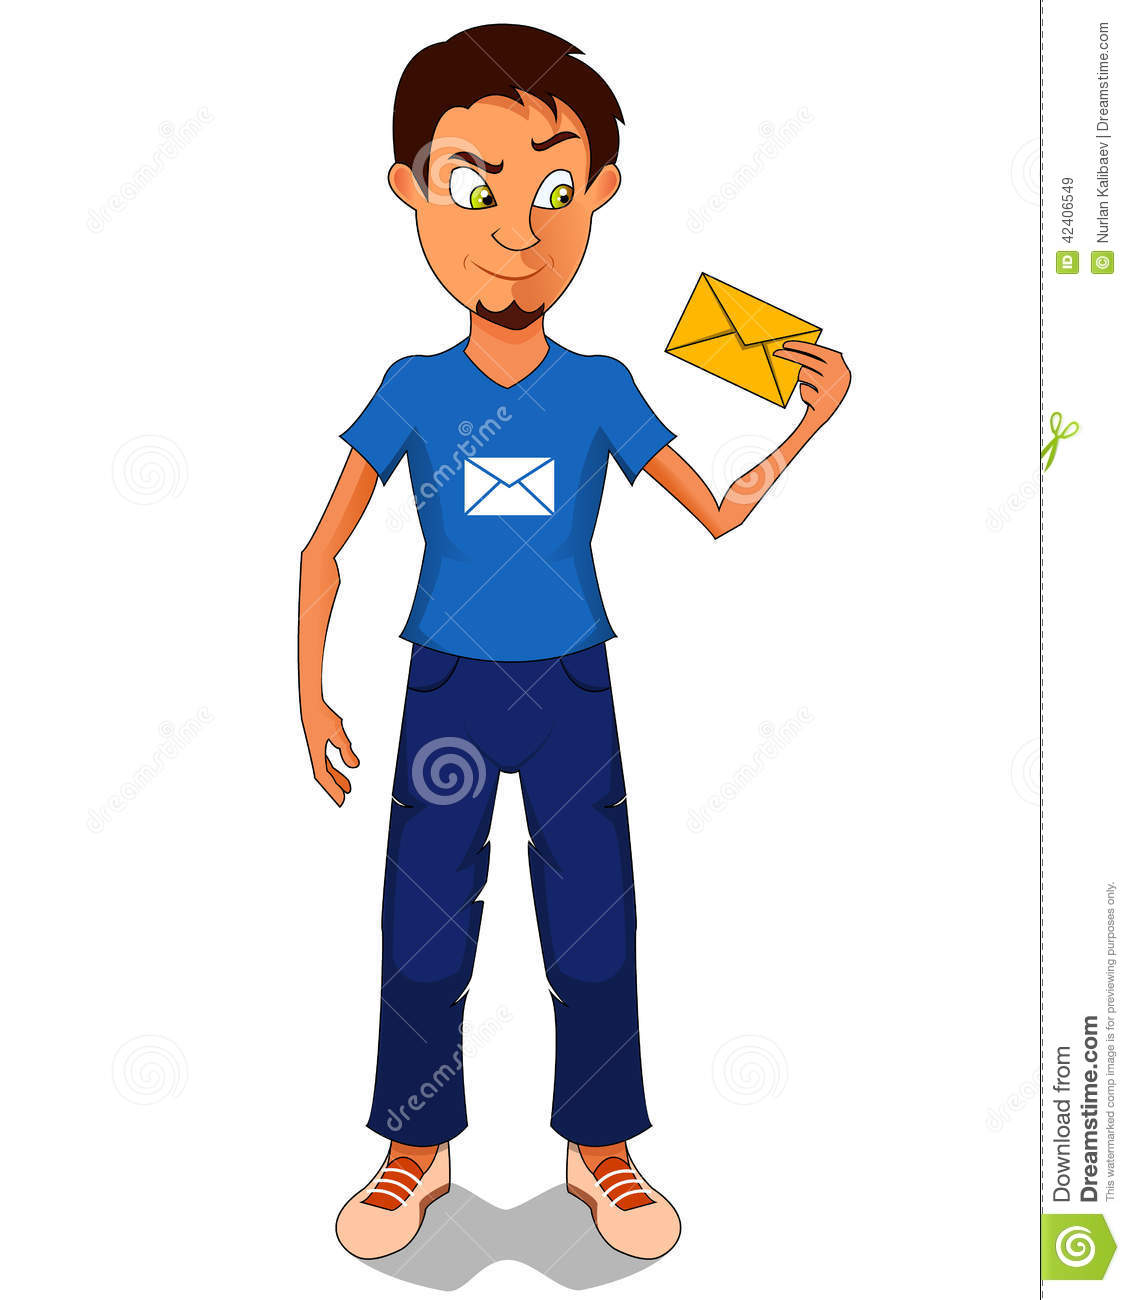 9 Letter Cartoon Characters : Man received the new letter cartoon character with web